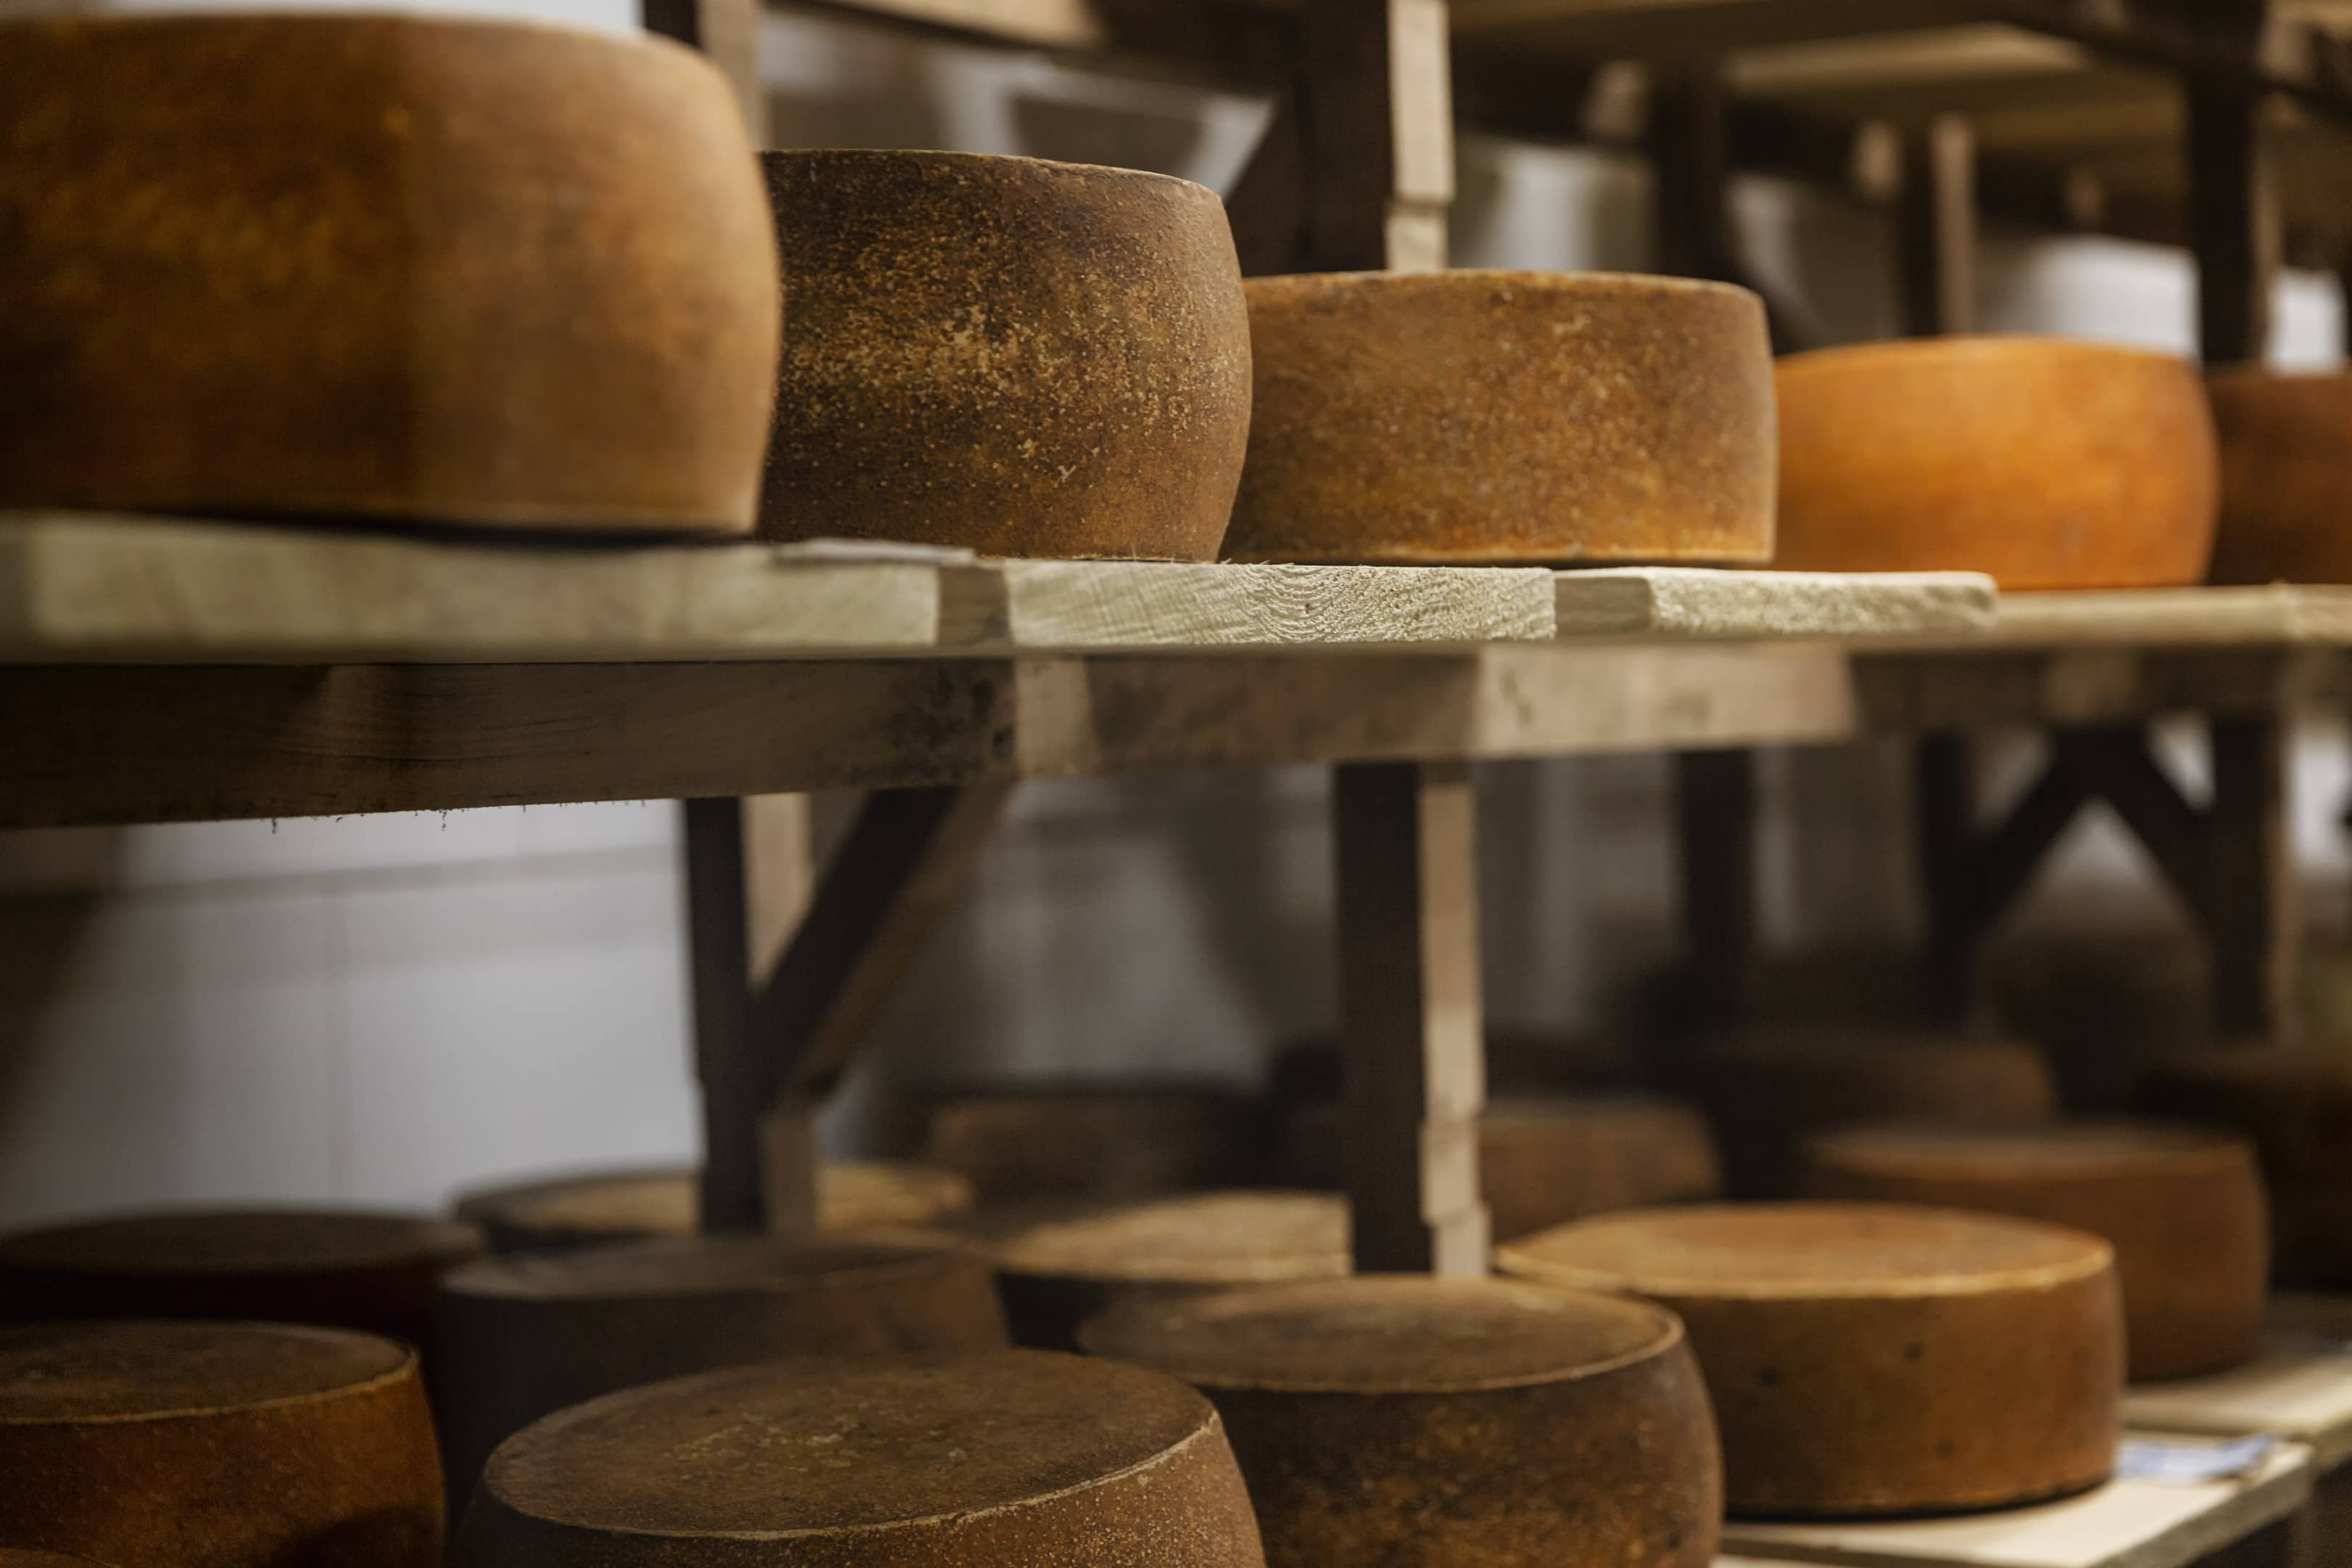 Loops of cheese on wooden shelves